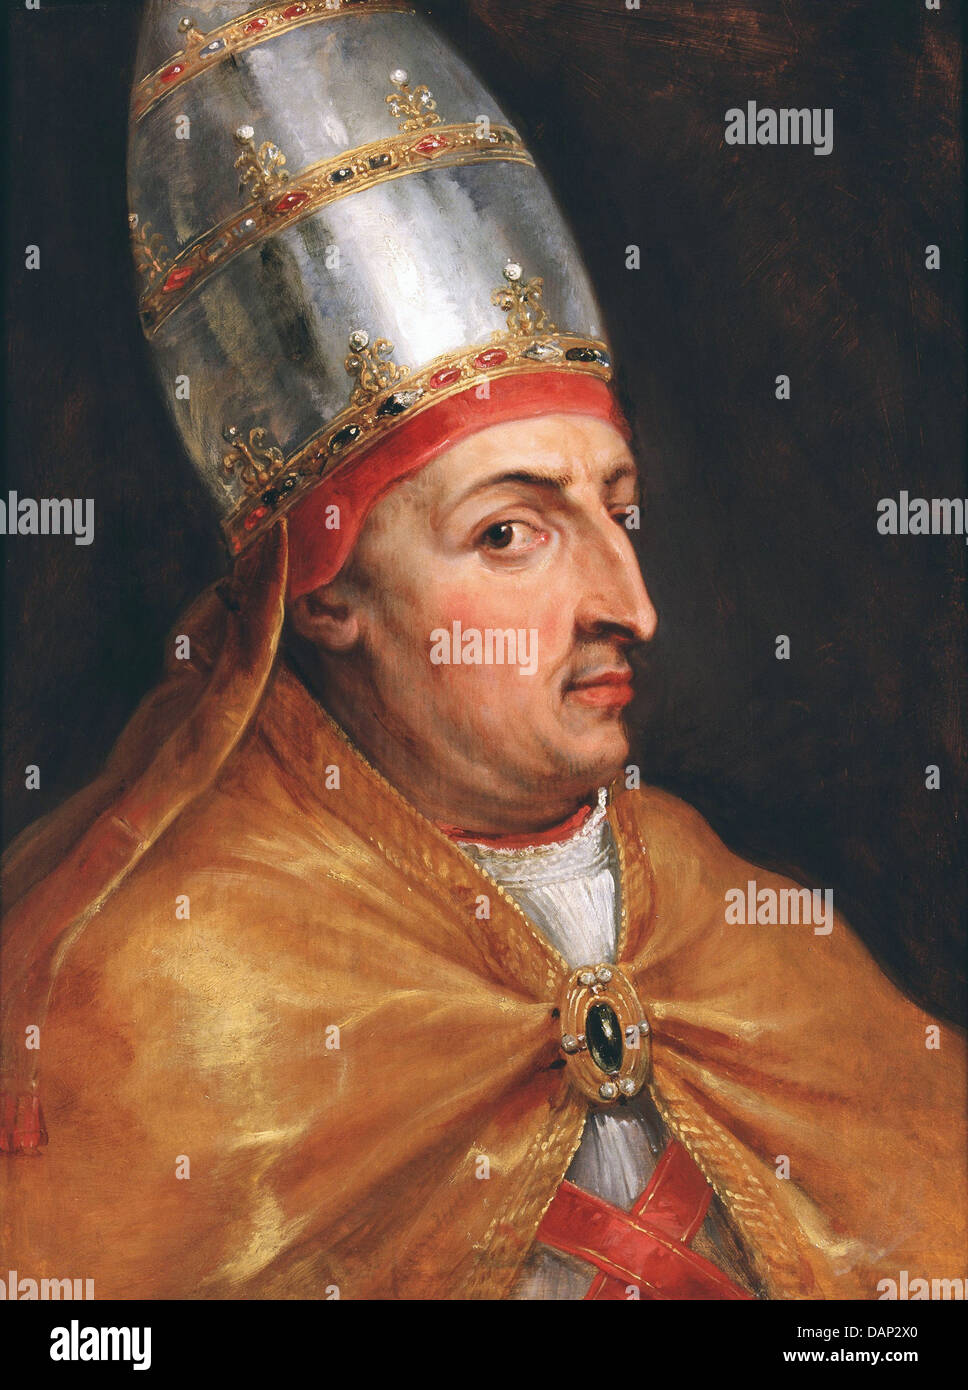 POPE NICHOLAS V (1397-1455) painted by Peter Paul Reubens about 1615 - Stock Image